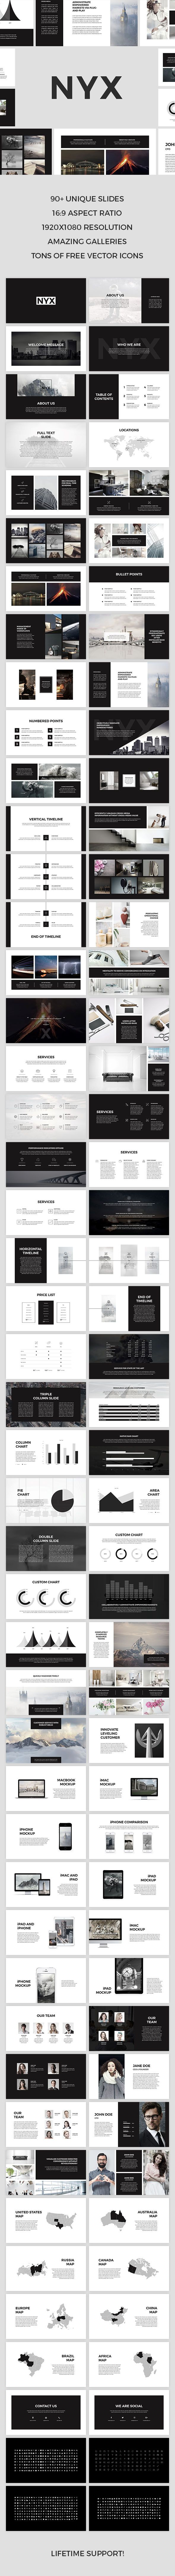 Nyx PowerPoint Template